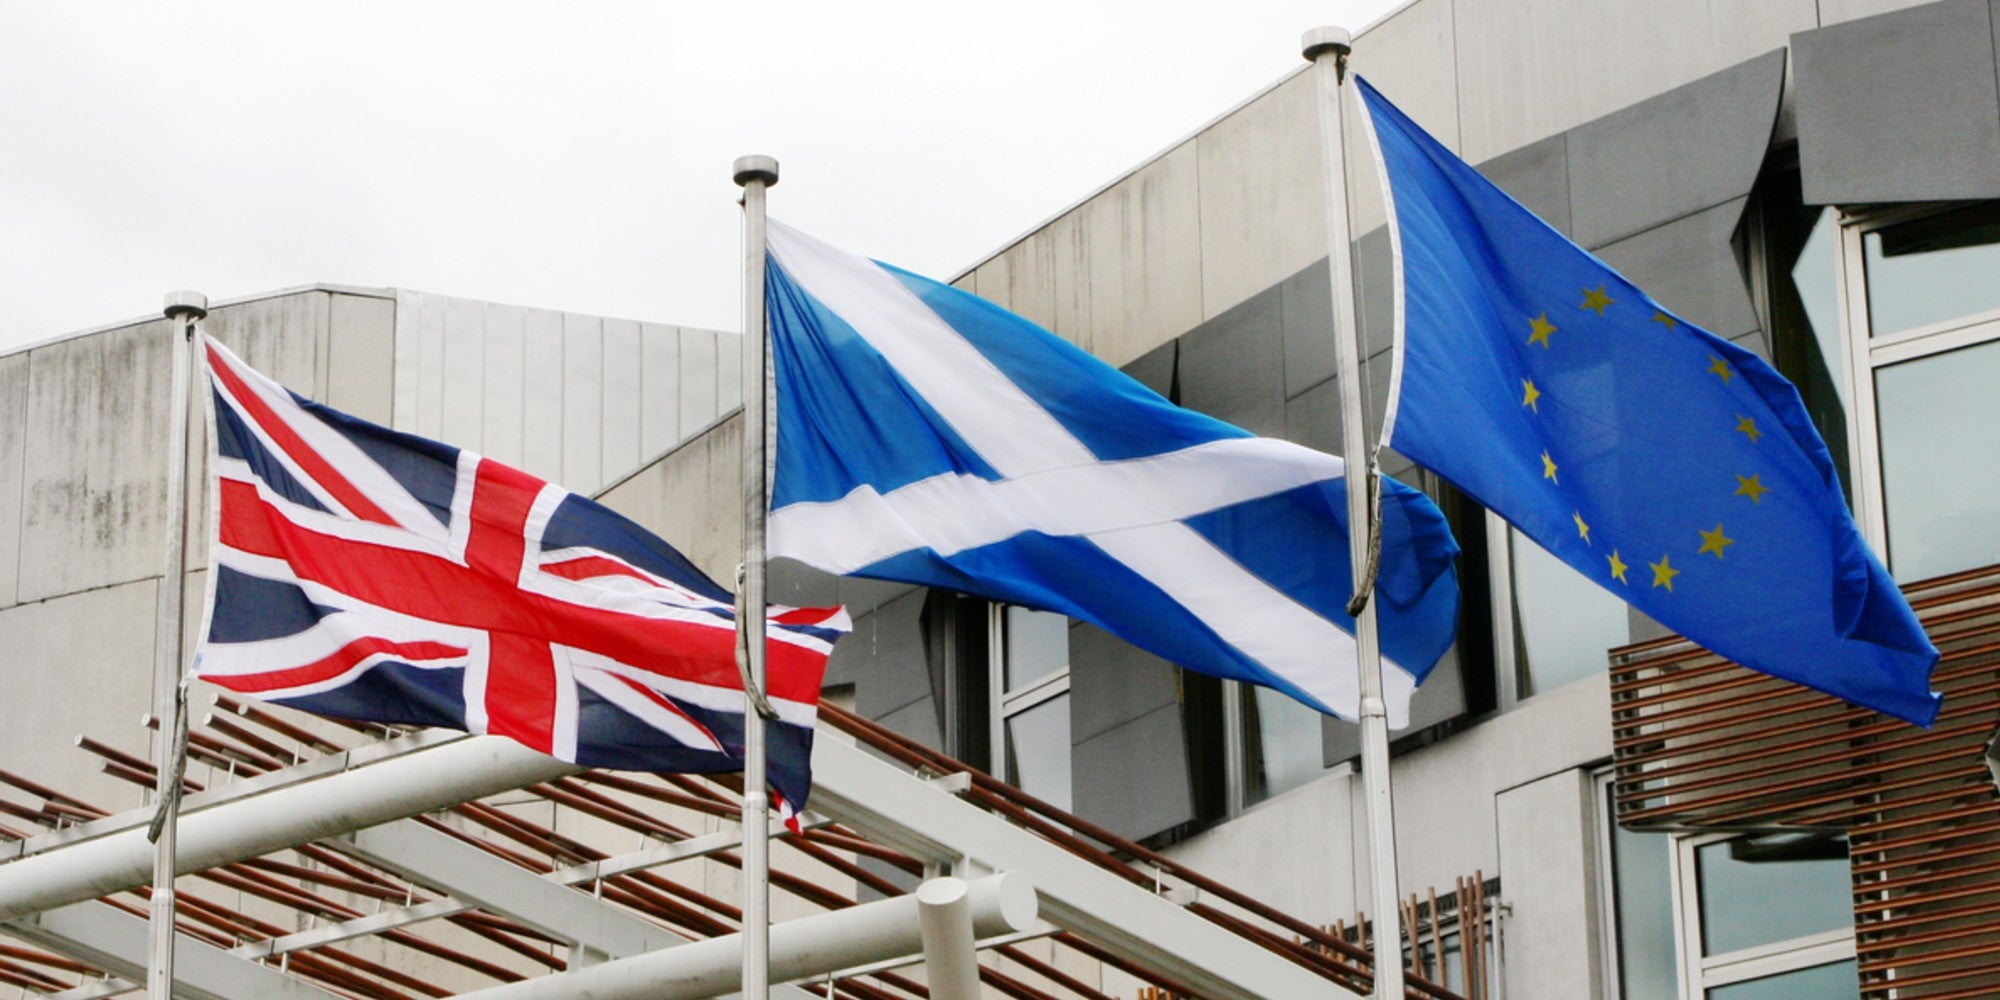 The EU would be open to Scotland joining but 'very reluctant' to let the UK return, expert says